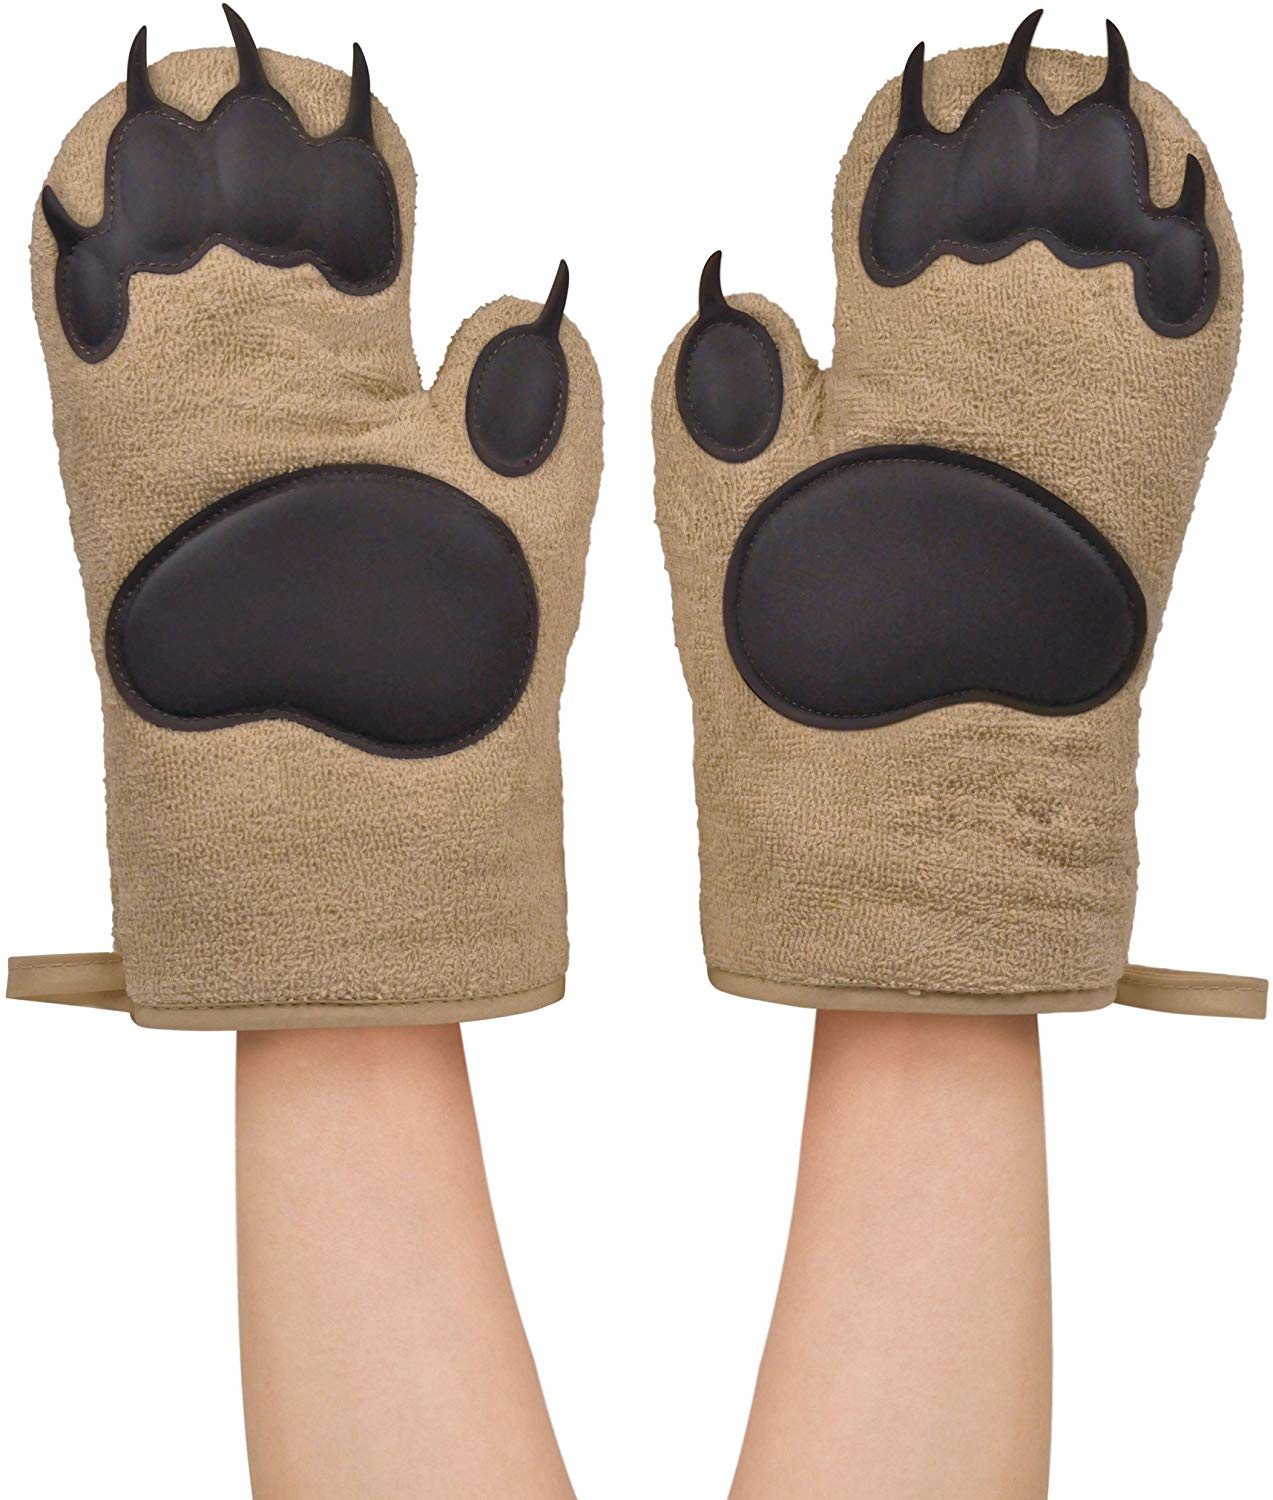 Fred bear hands oven mitts